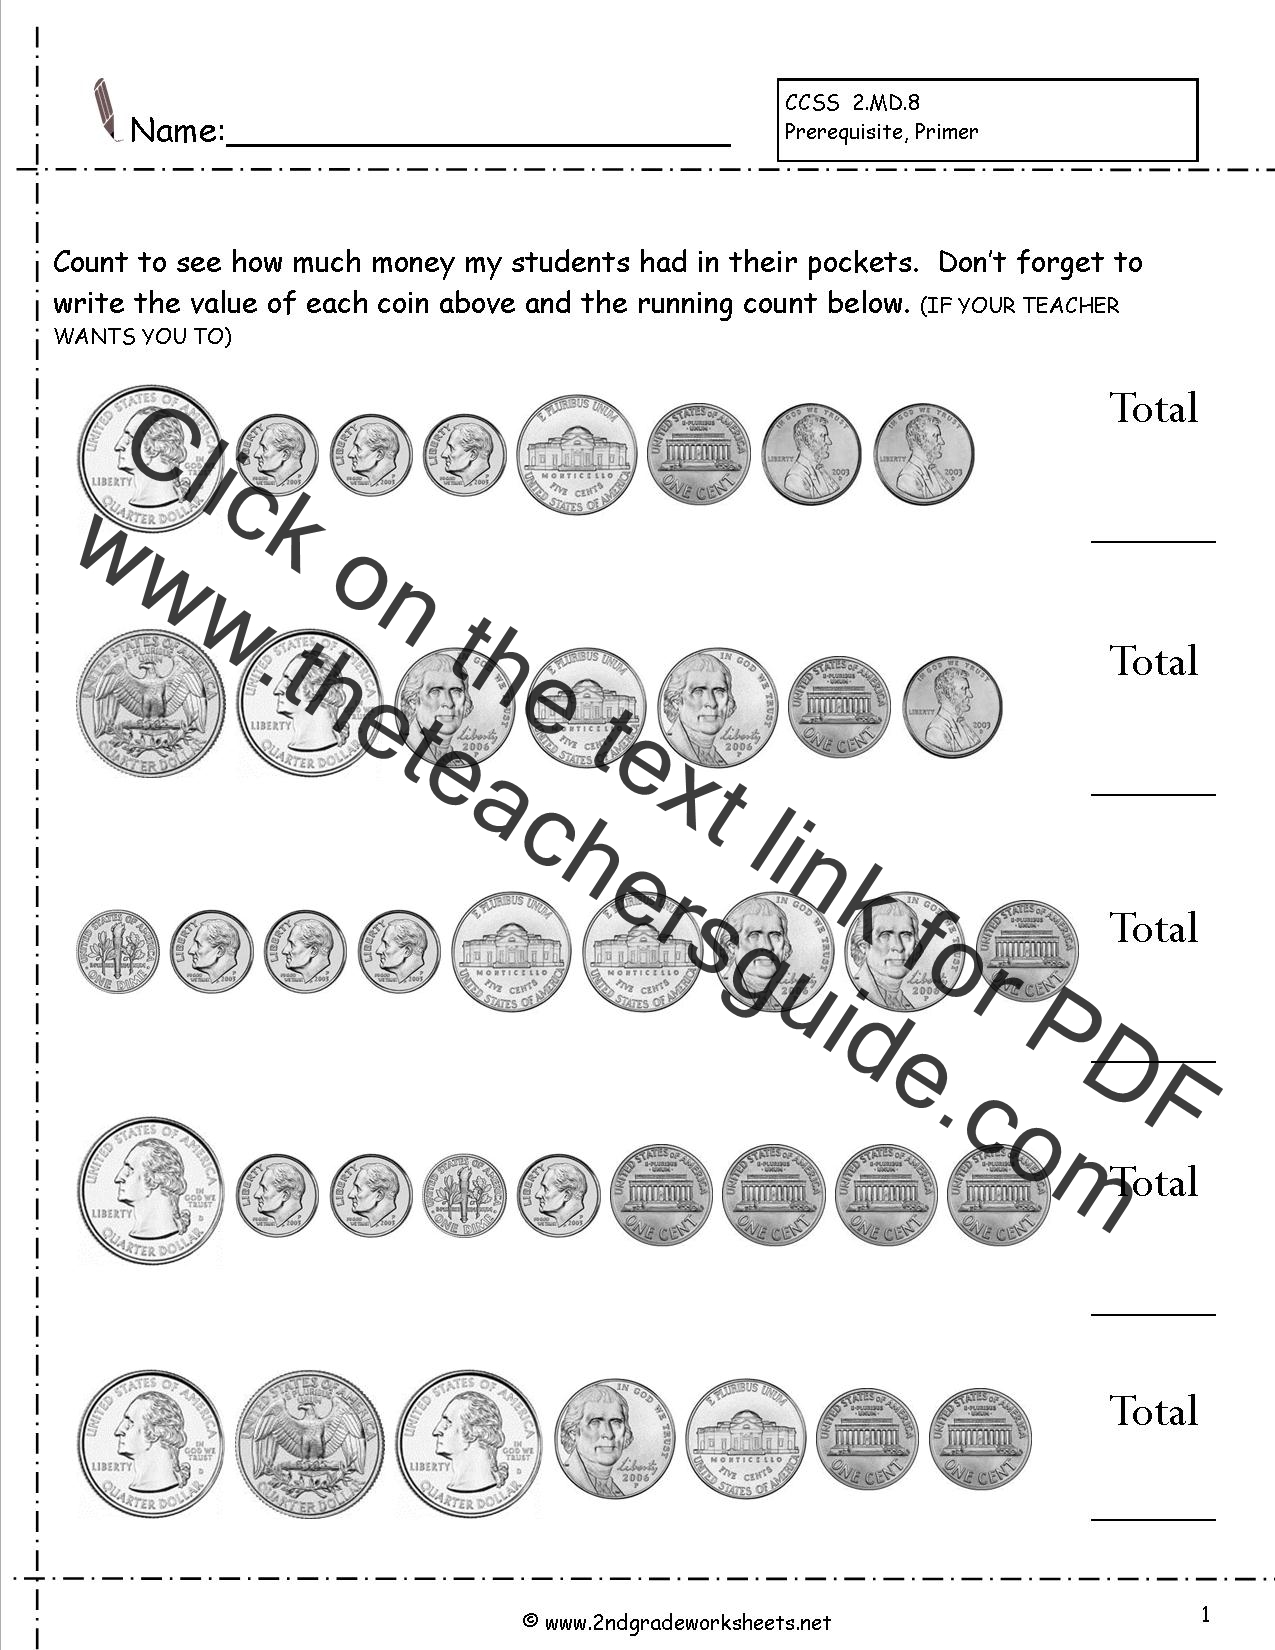 Worksheets Free Money Counting Worksheets counting coins and money worksheets printouts worksheets